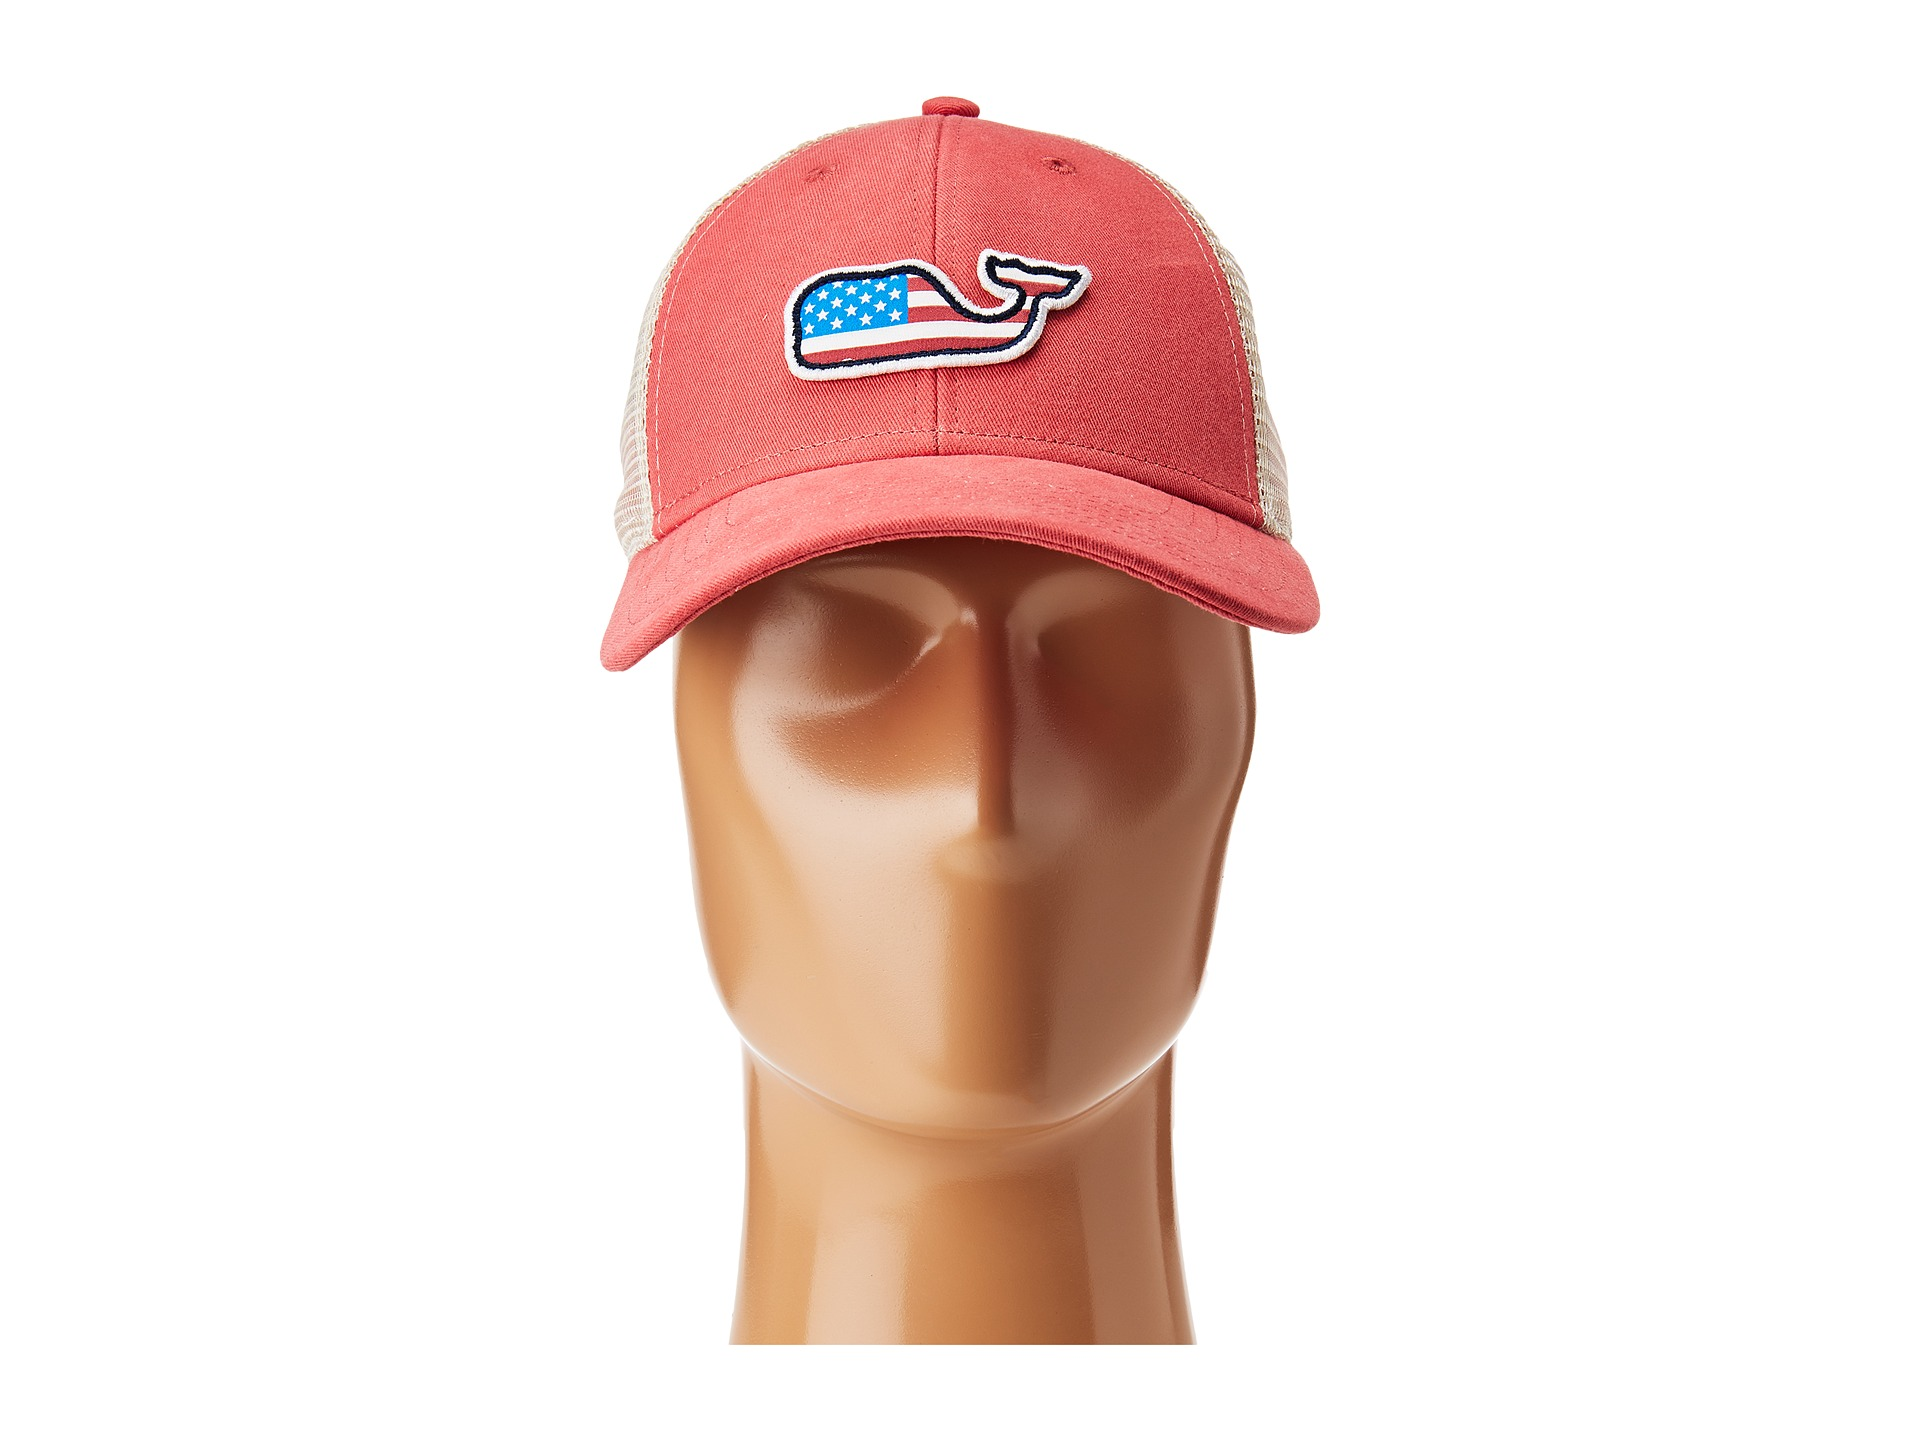 Great cond. Vineyar Vines Whale Flag Baseball Hat Cap VINEYARD NAVY Adjustable. Pre-owned · Vineyard Vines · Baseball Cap · Size:One Size. AU $ From United States. 10% GST will apply. Customs services and international tracking provided. or Best Offer +AU $ postage.